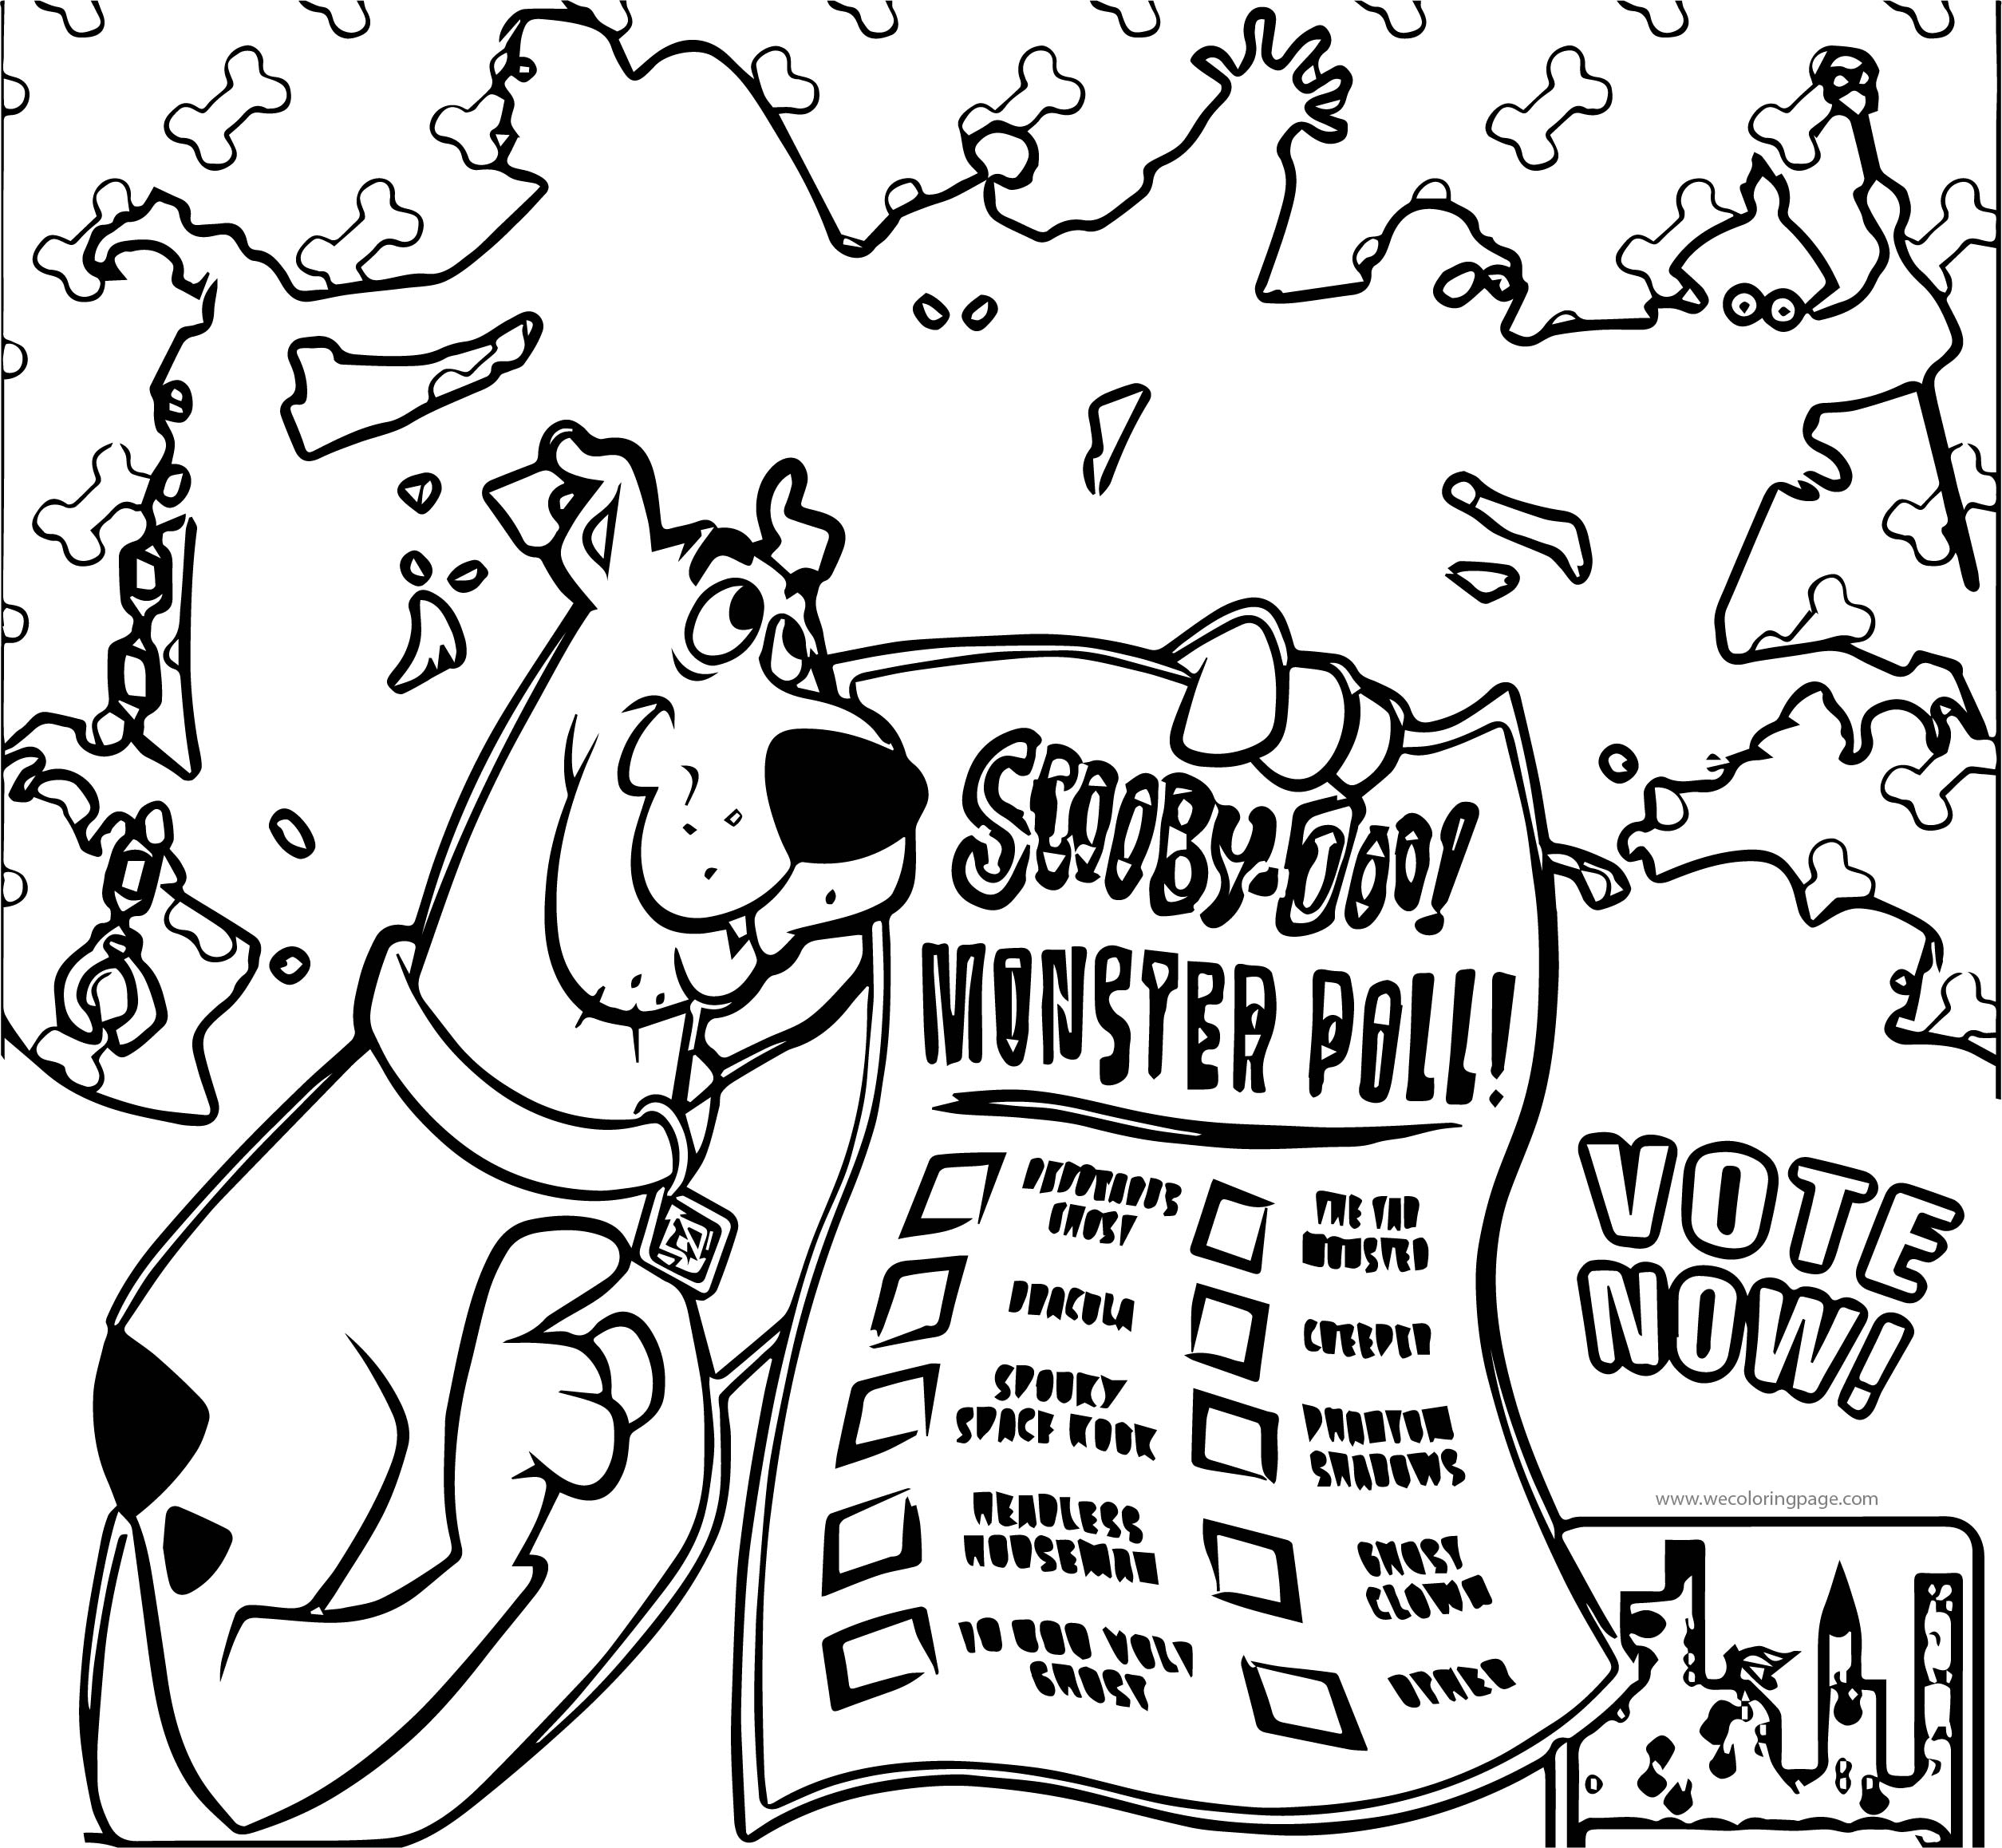 Mego Museum Scooby Doo Poll Coloring Page